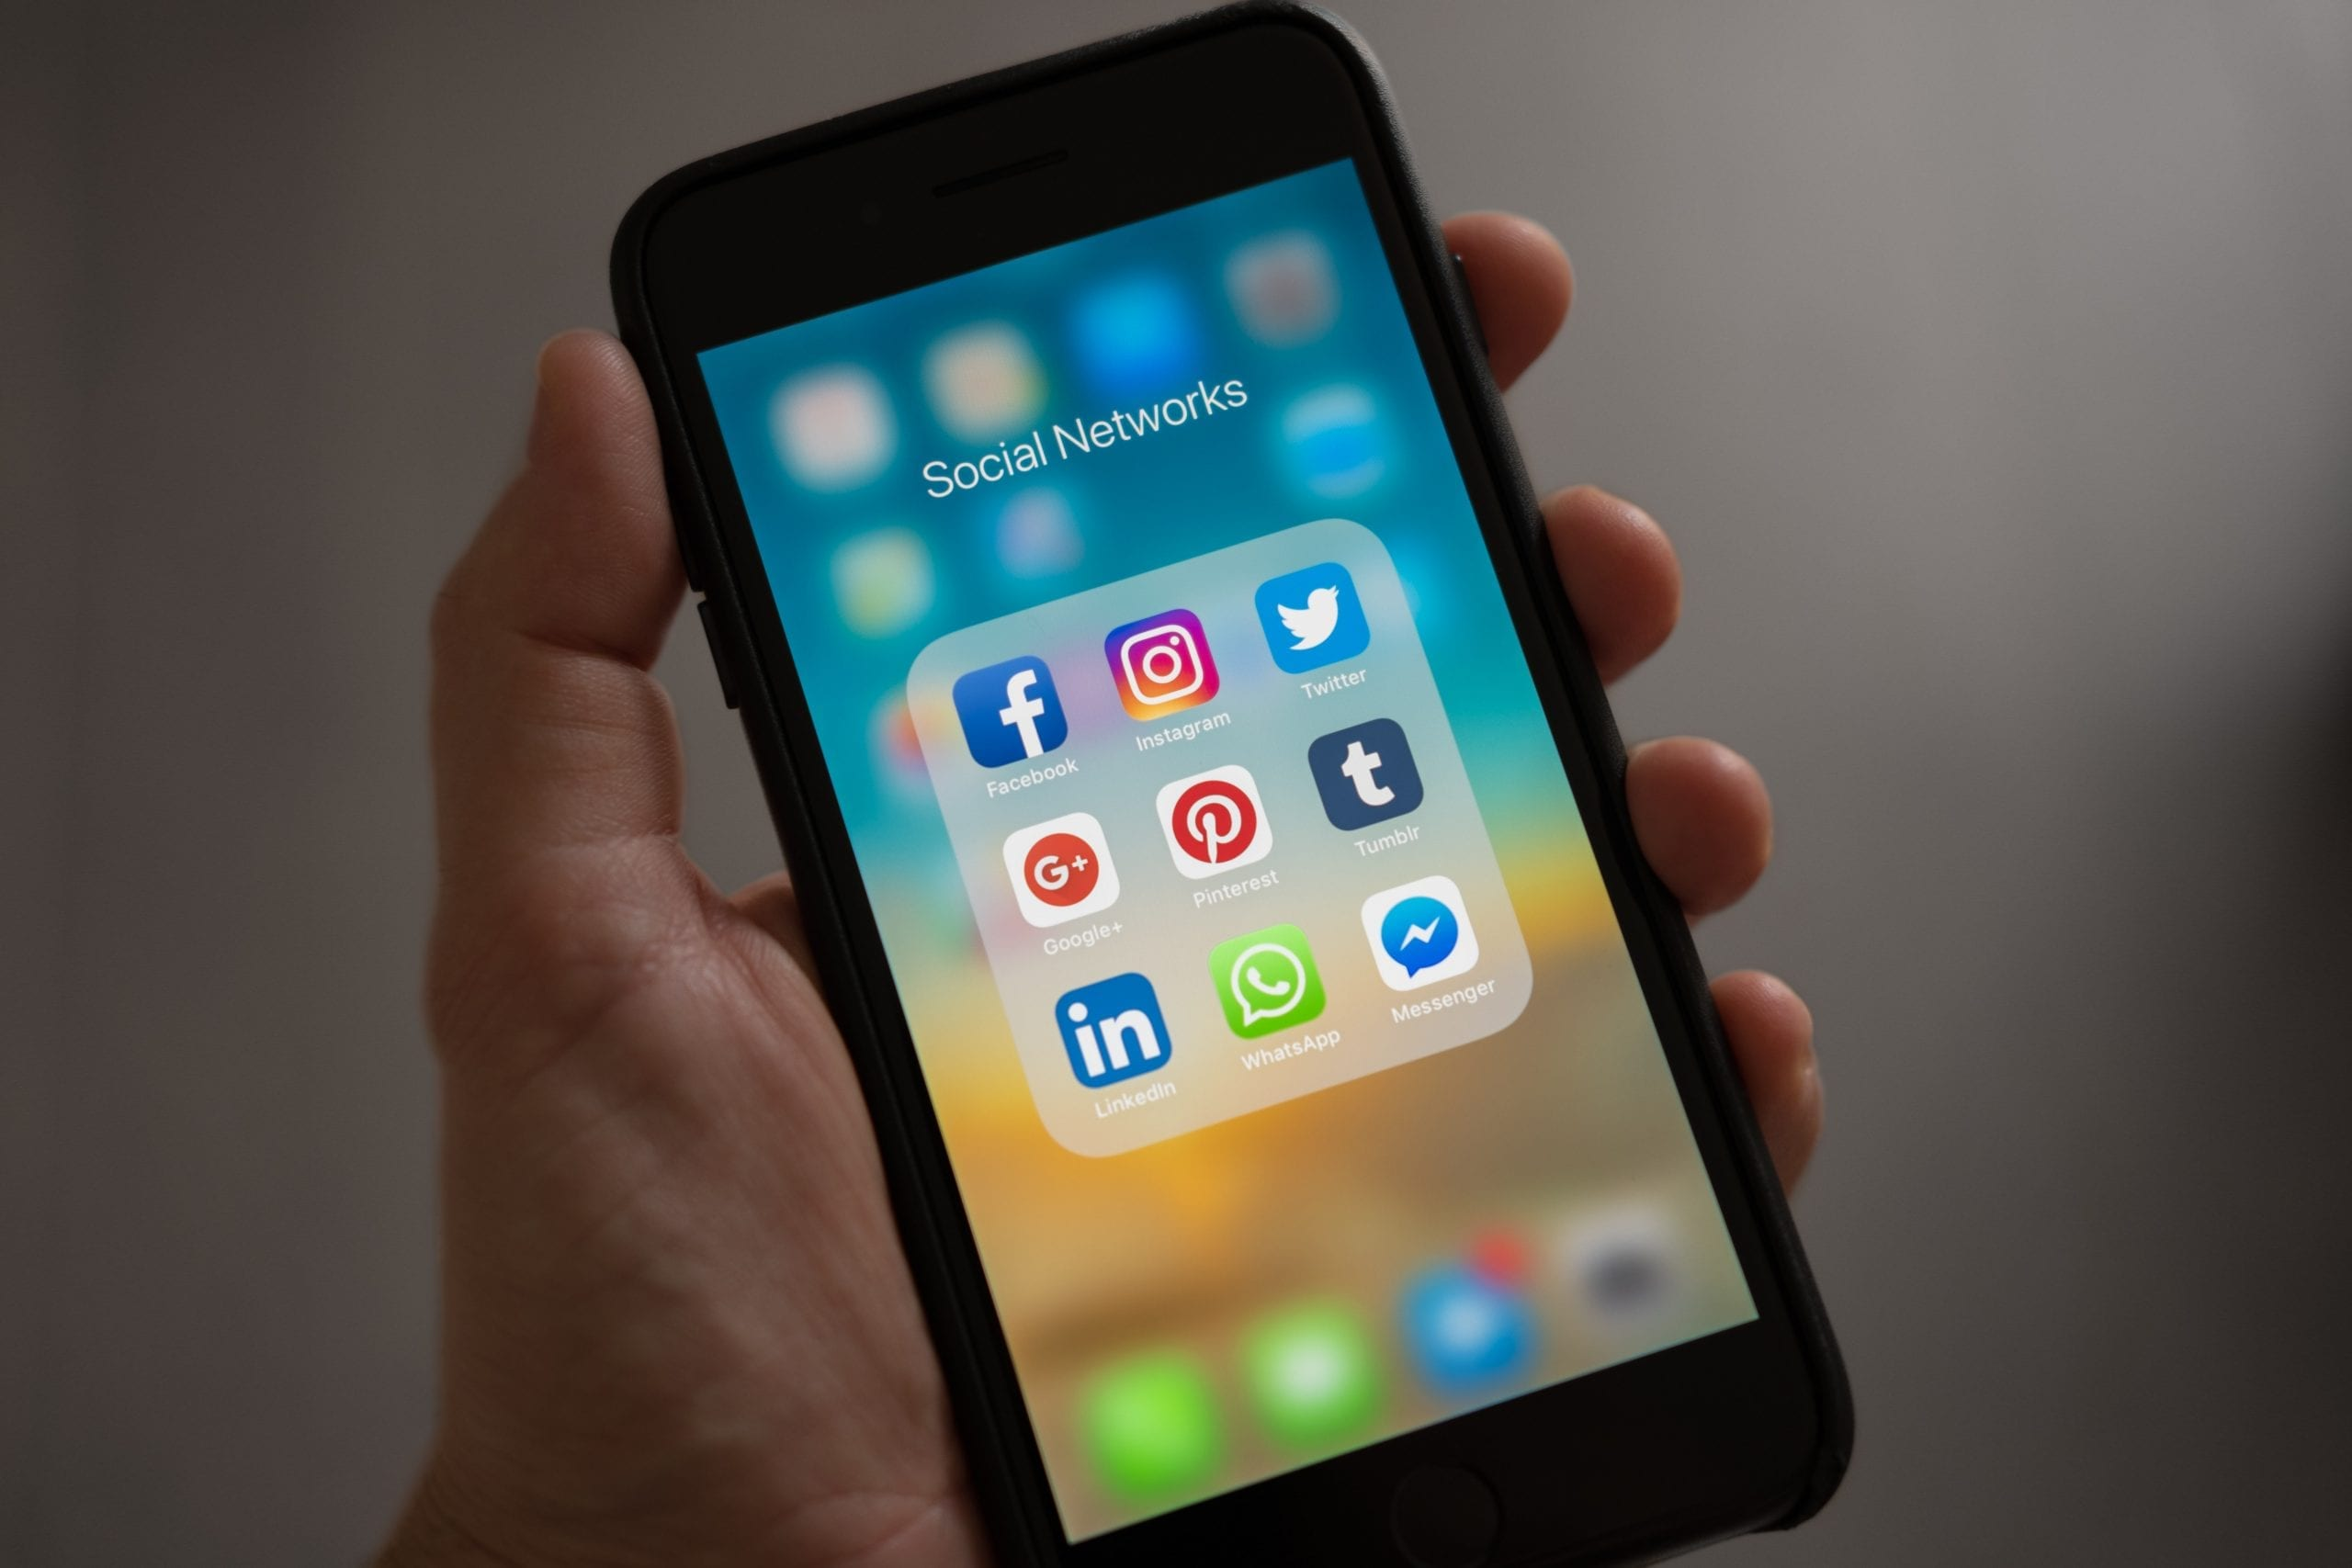 Be sure to save these social media TOP 6 TIPS!